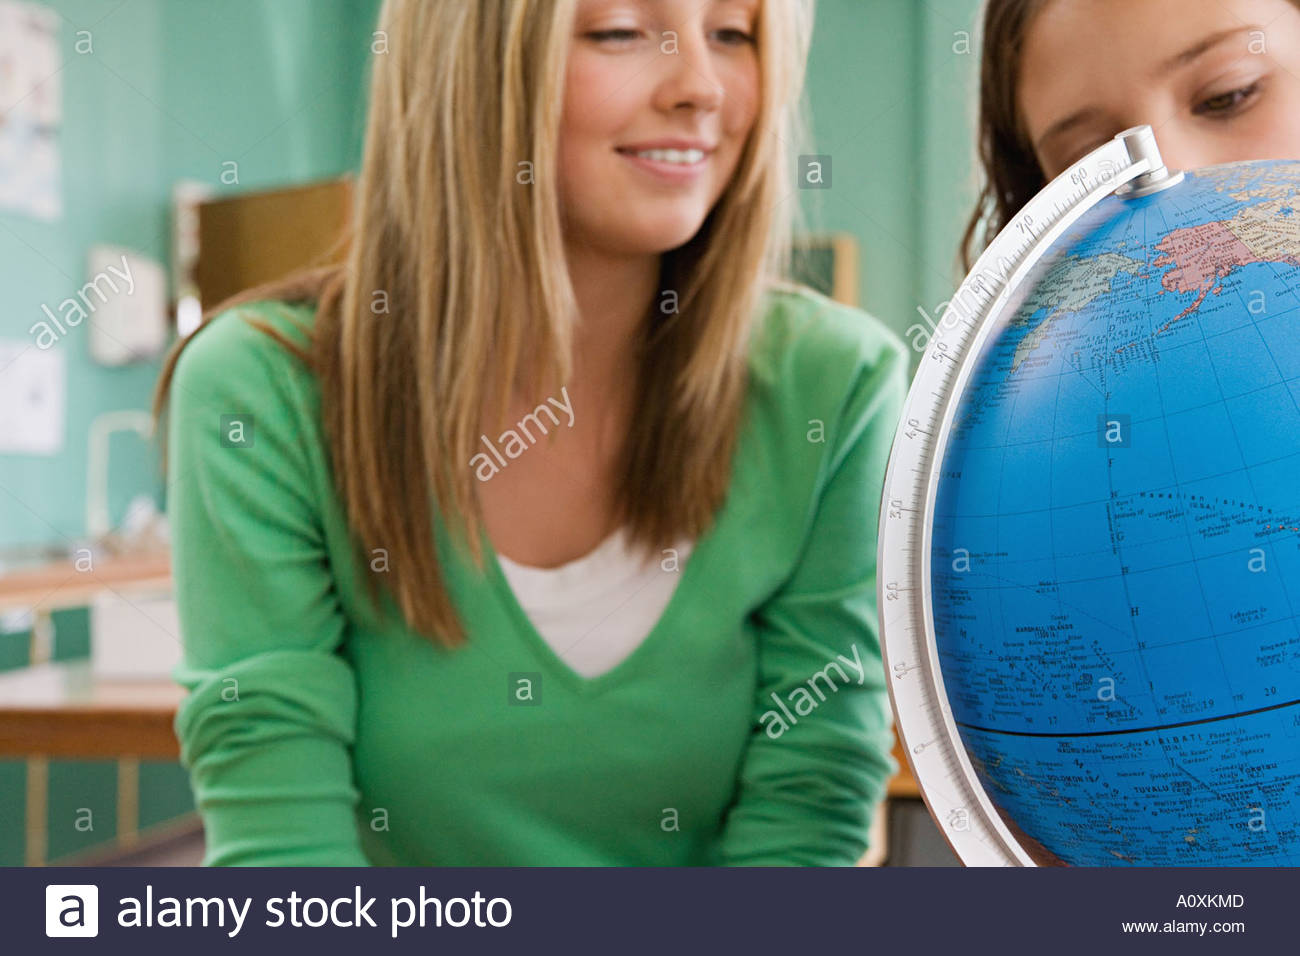 Girls looking at a globe - Stock Image